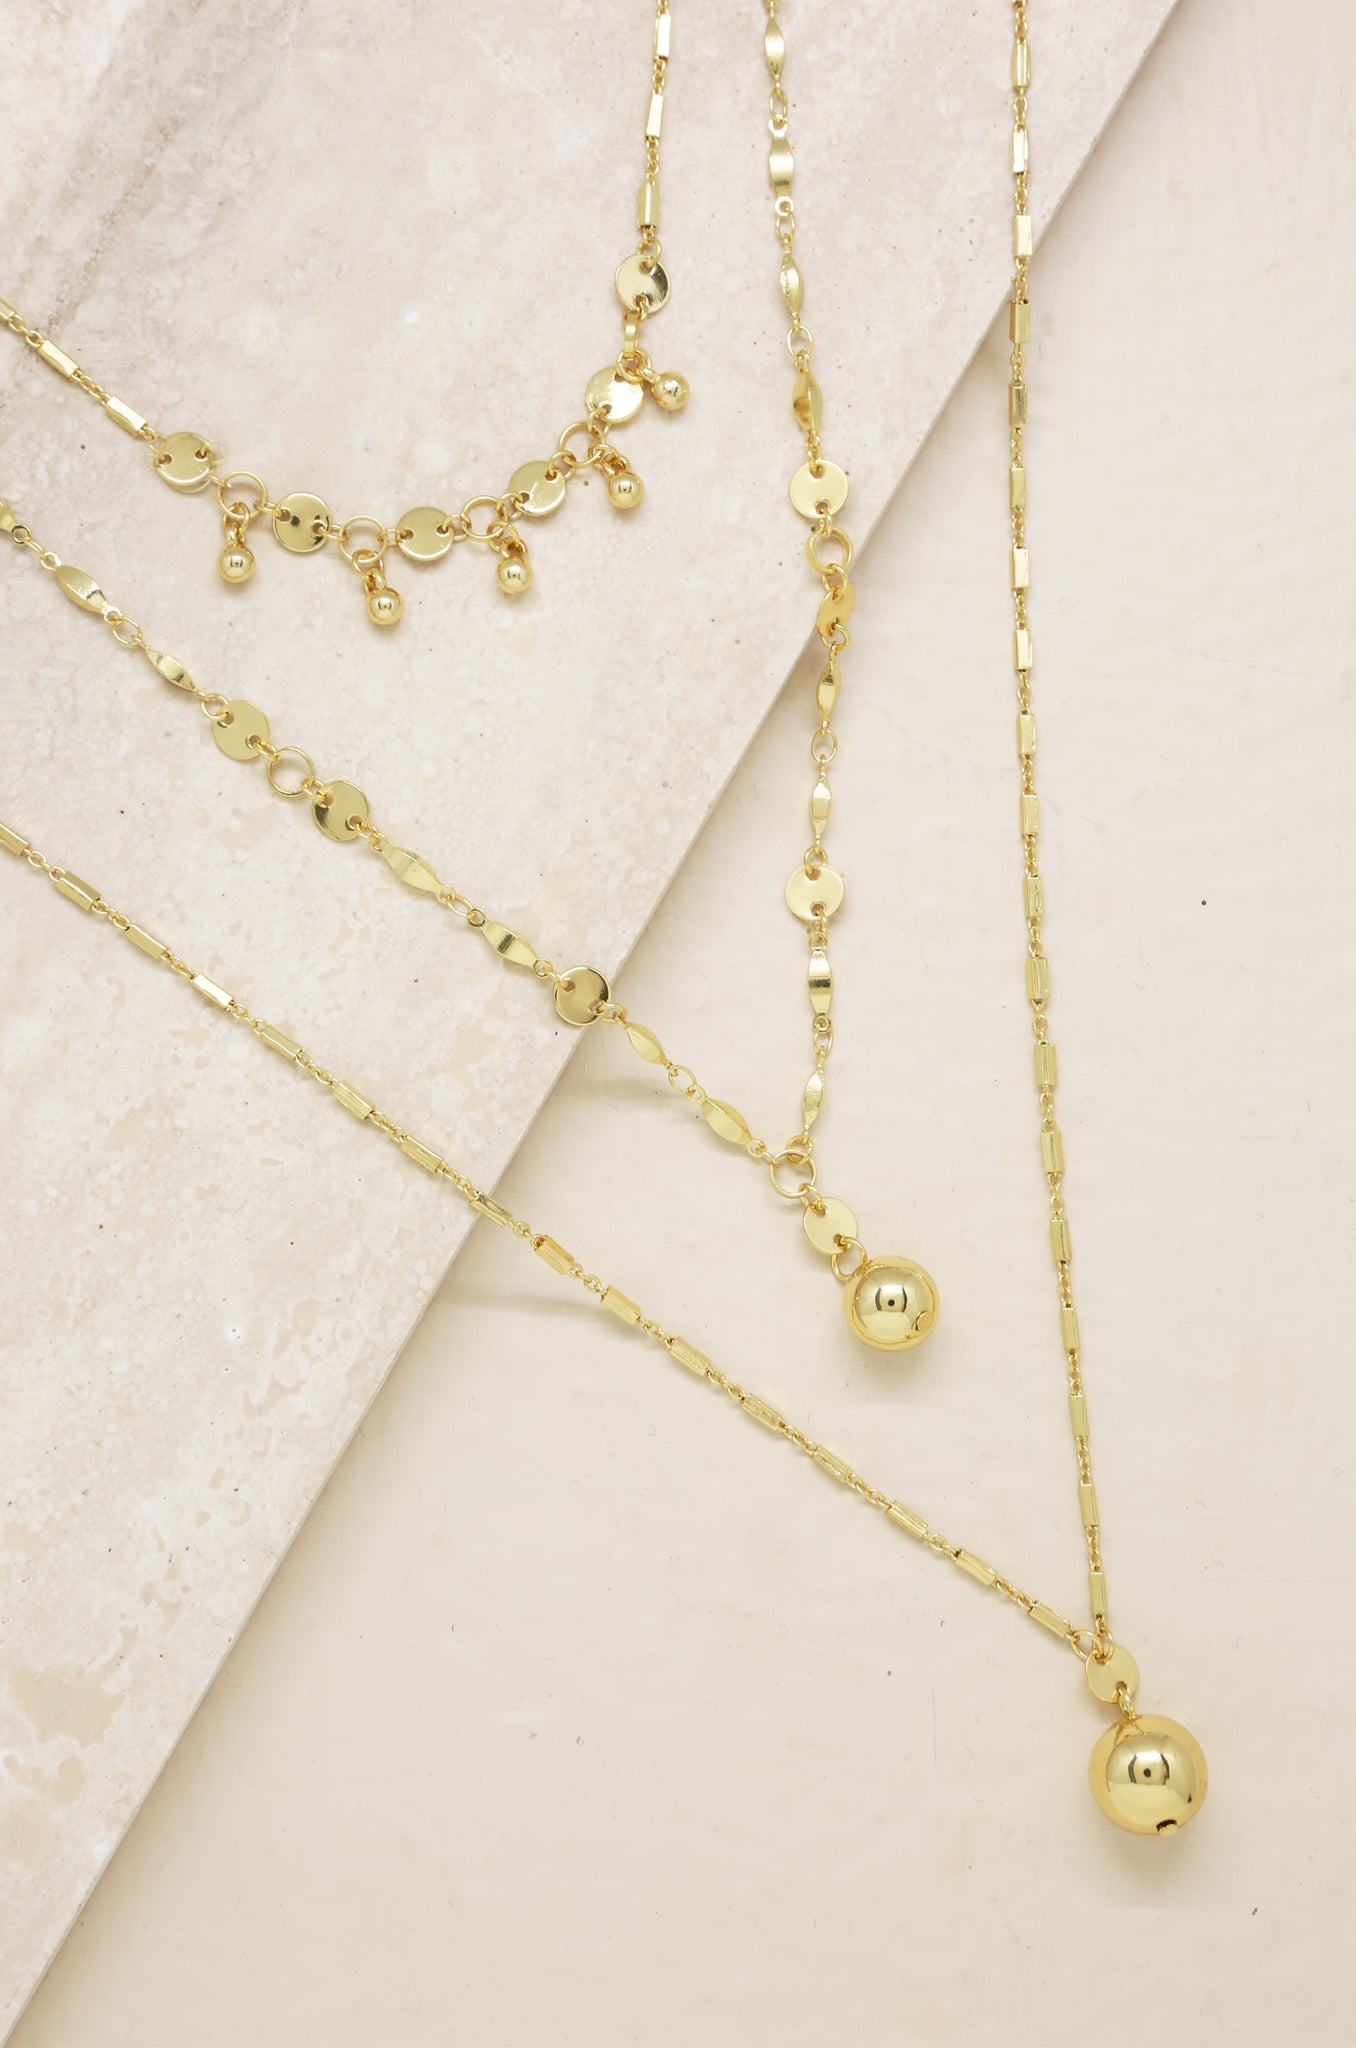 Triple Threat Gold Ball Charm 18k Gold Plated Necklace Set